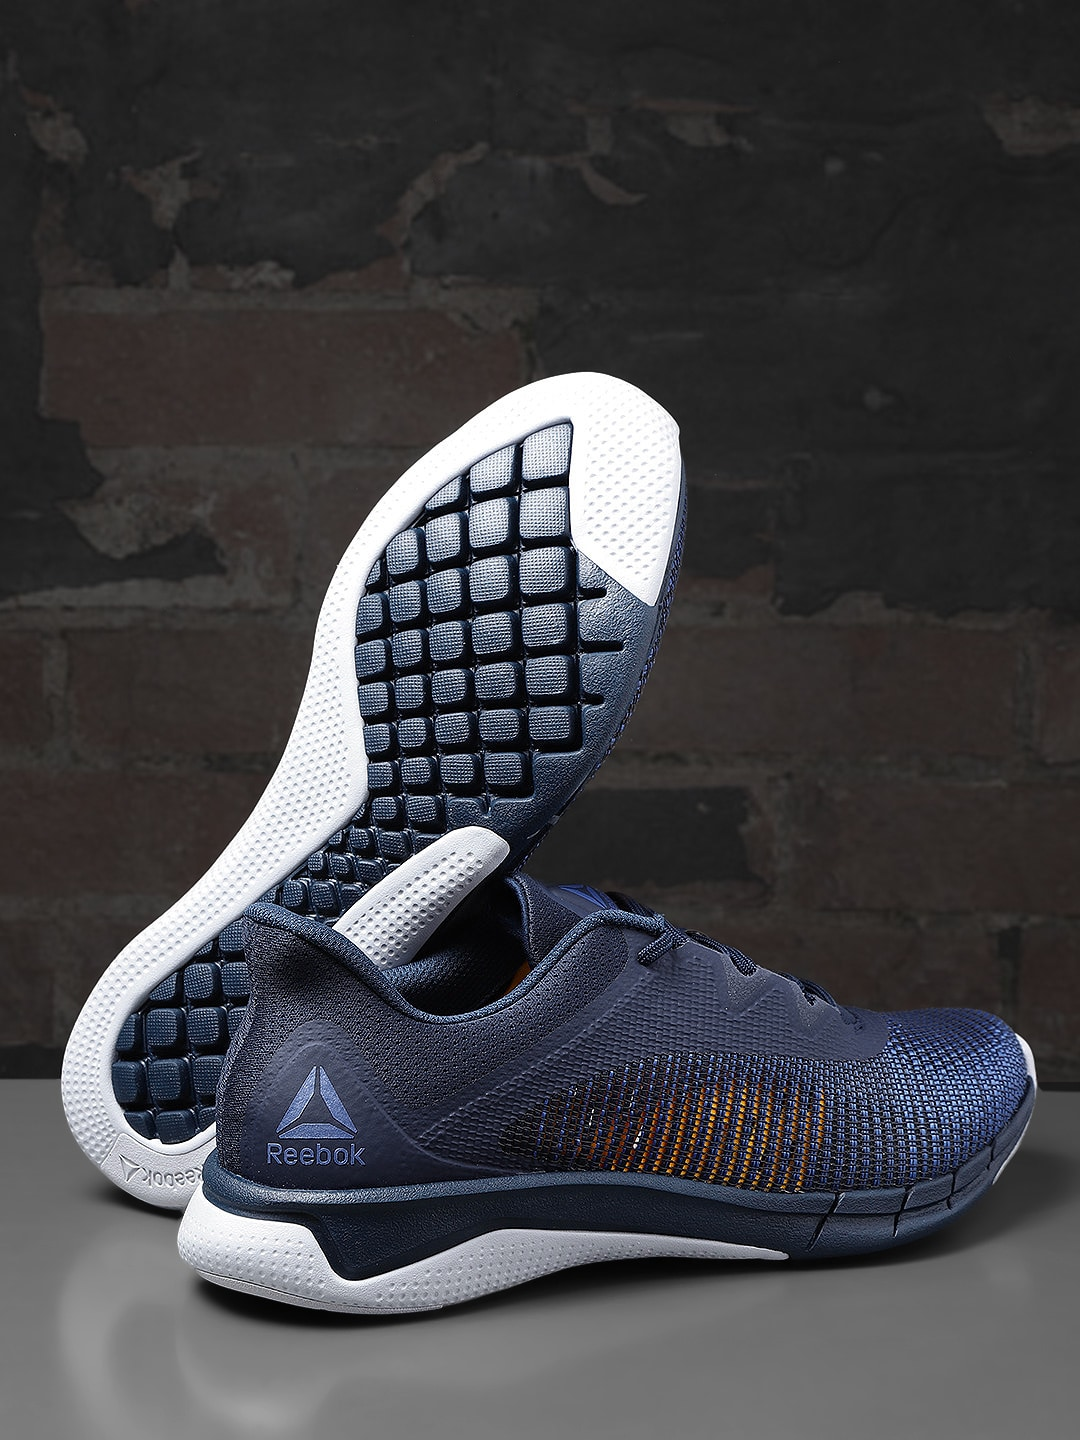 303596167 Reebok Sports Shoes - Buy Reebok Sports Shoes in India